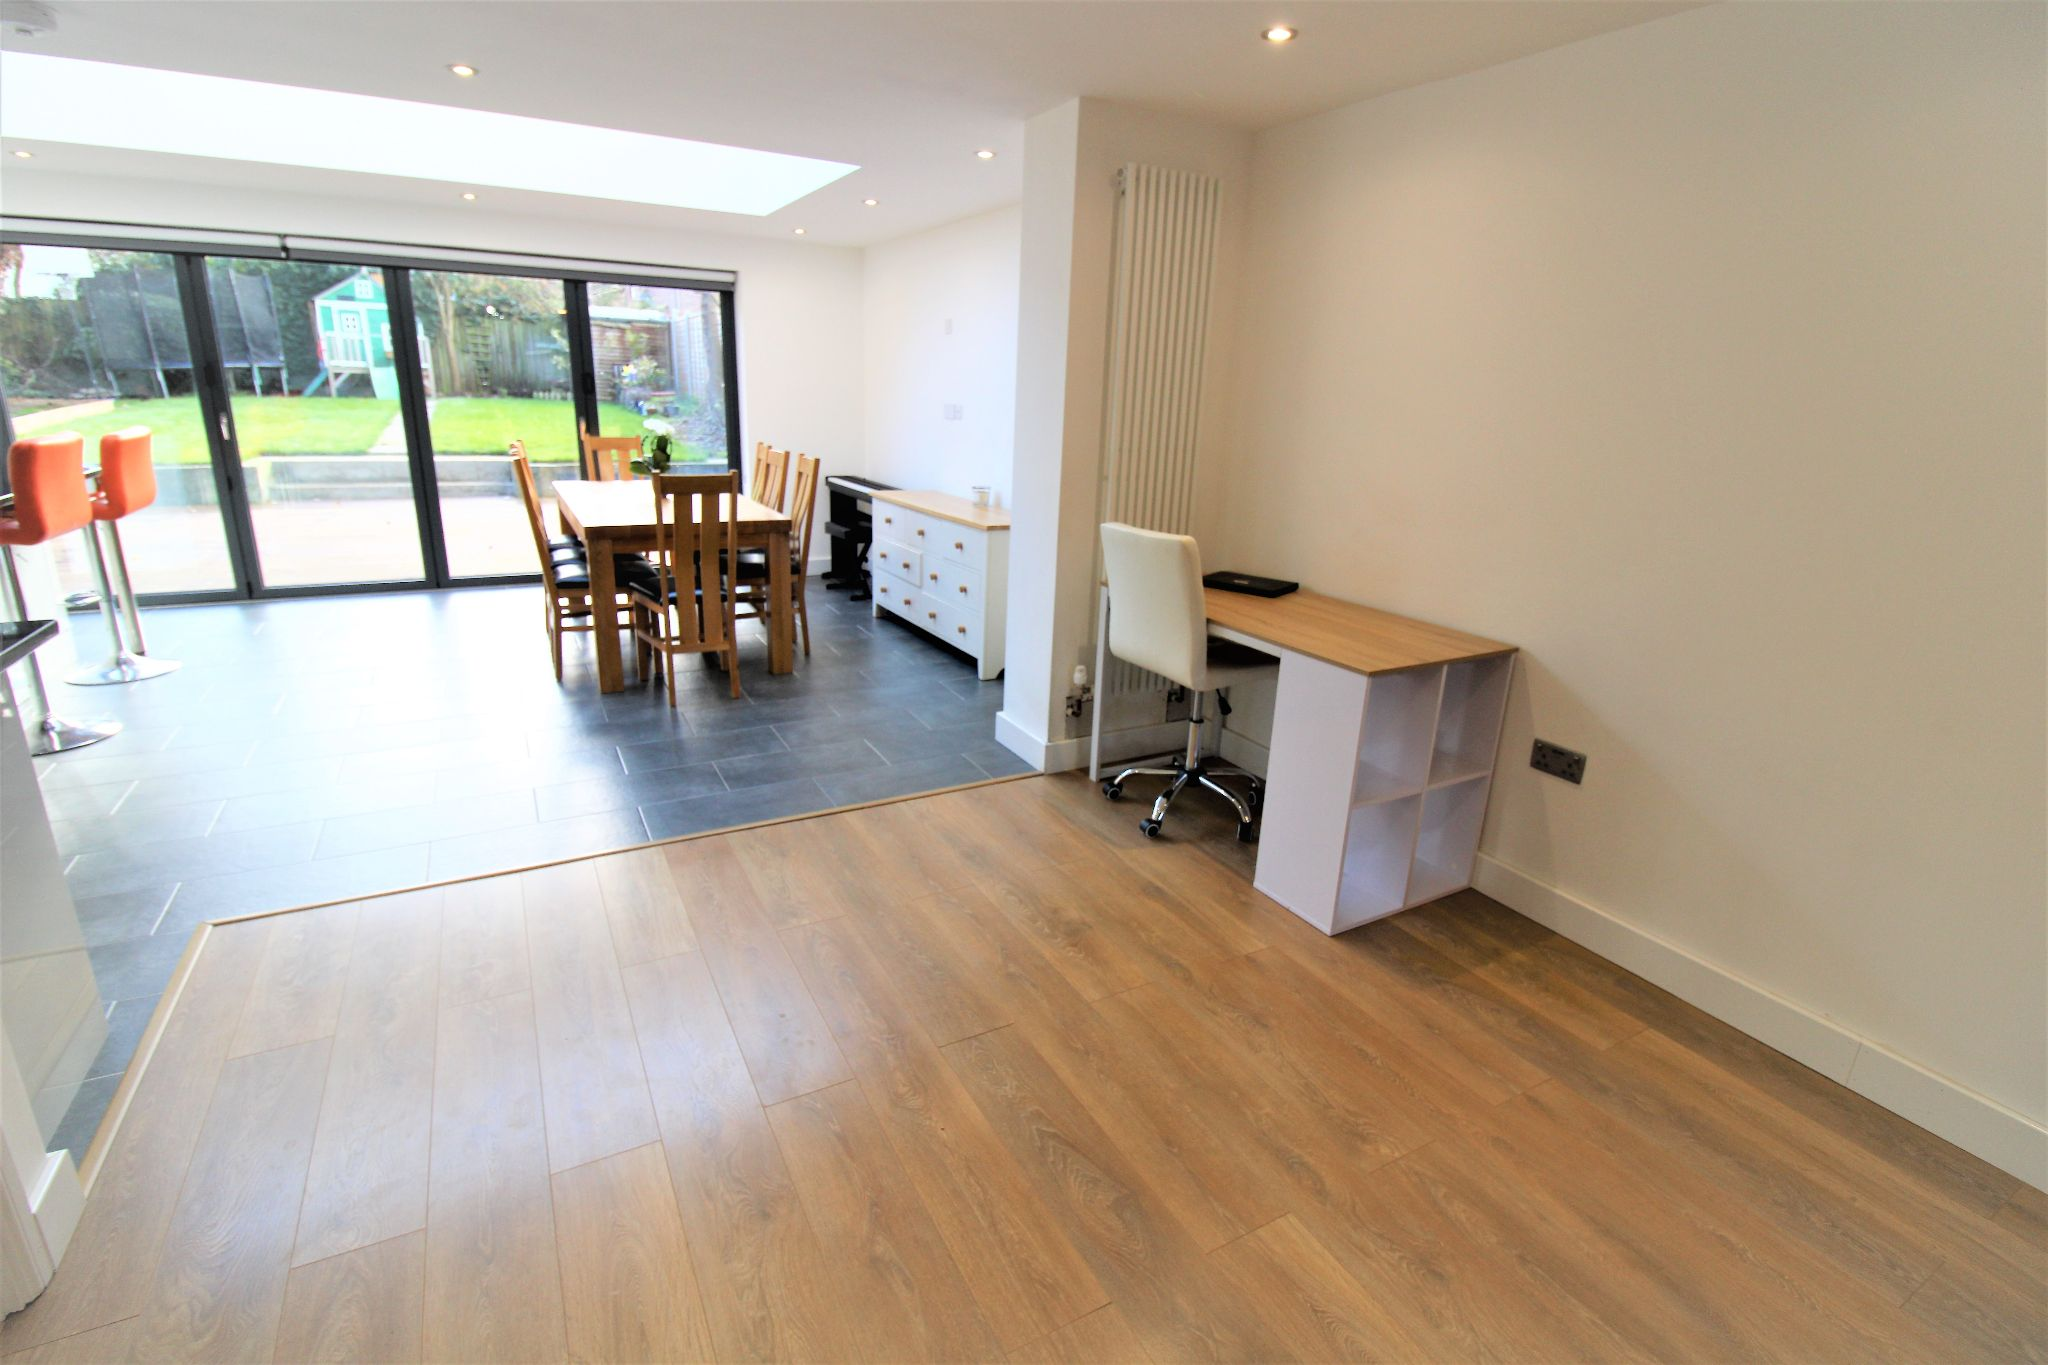 4 Bedroom Detached House For Sale - Study Area